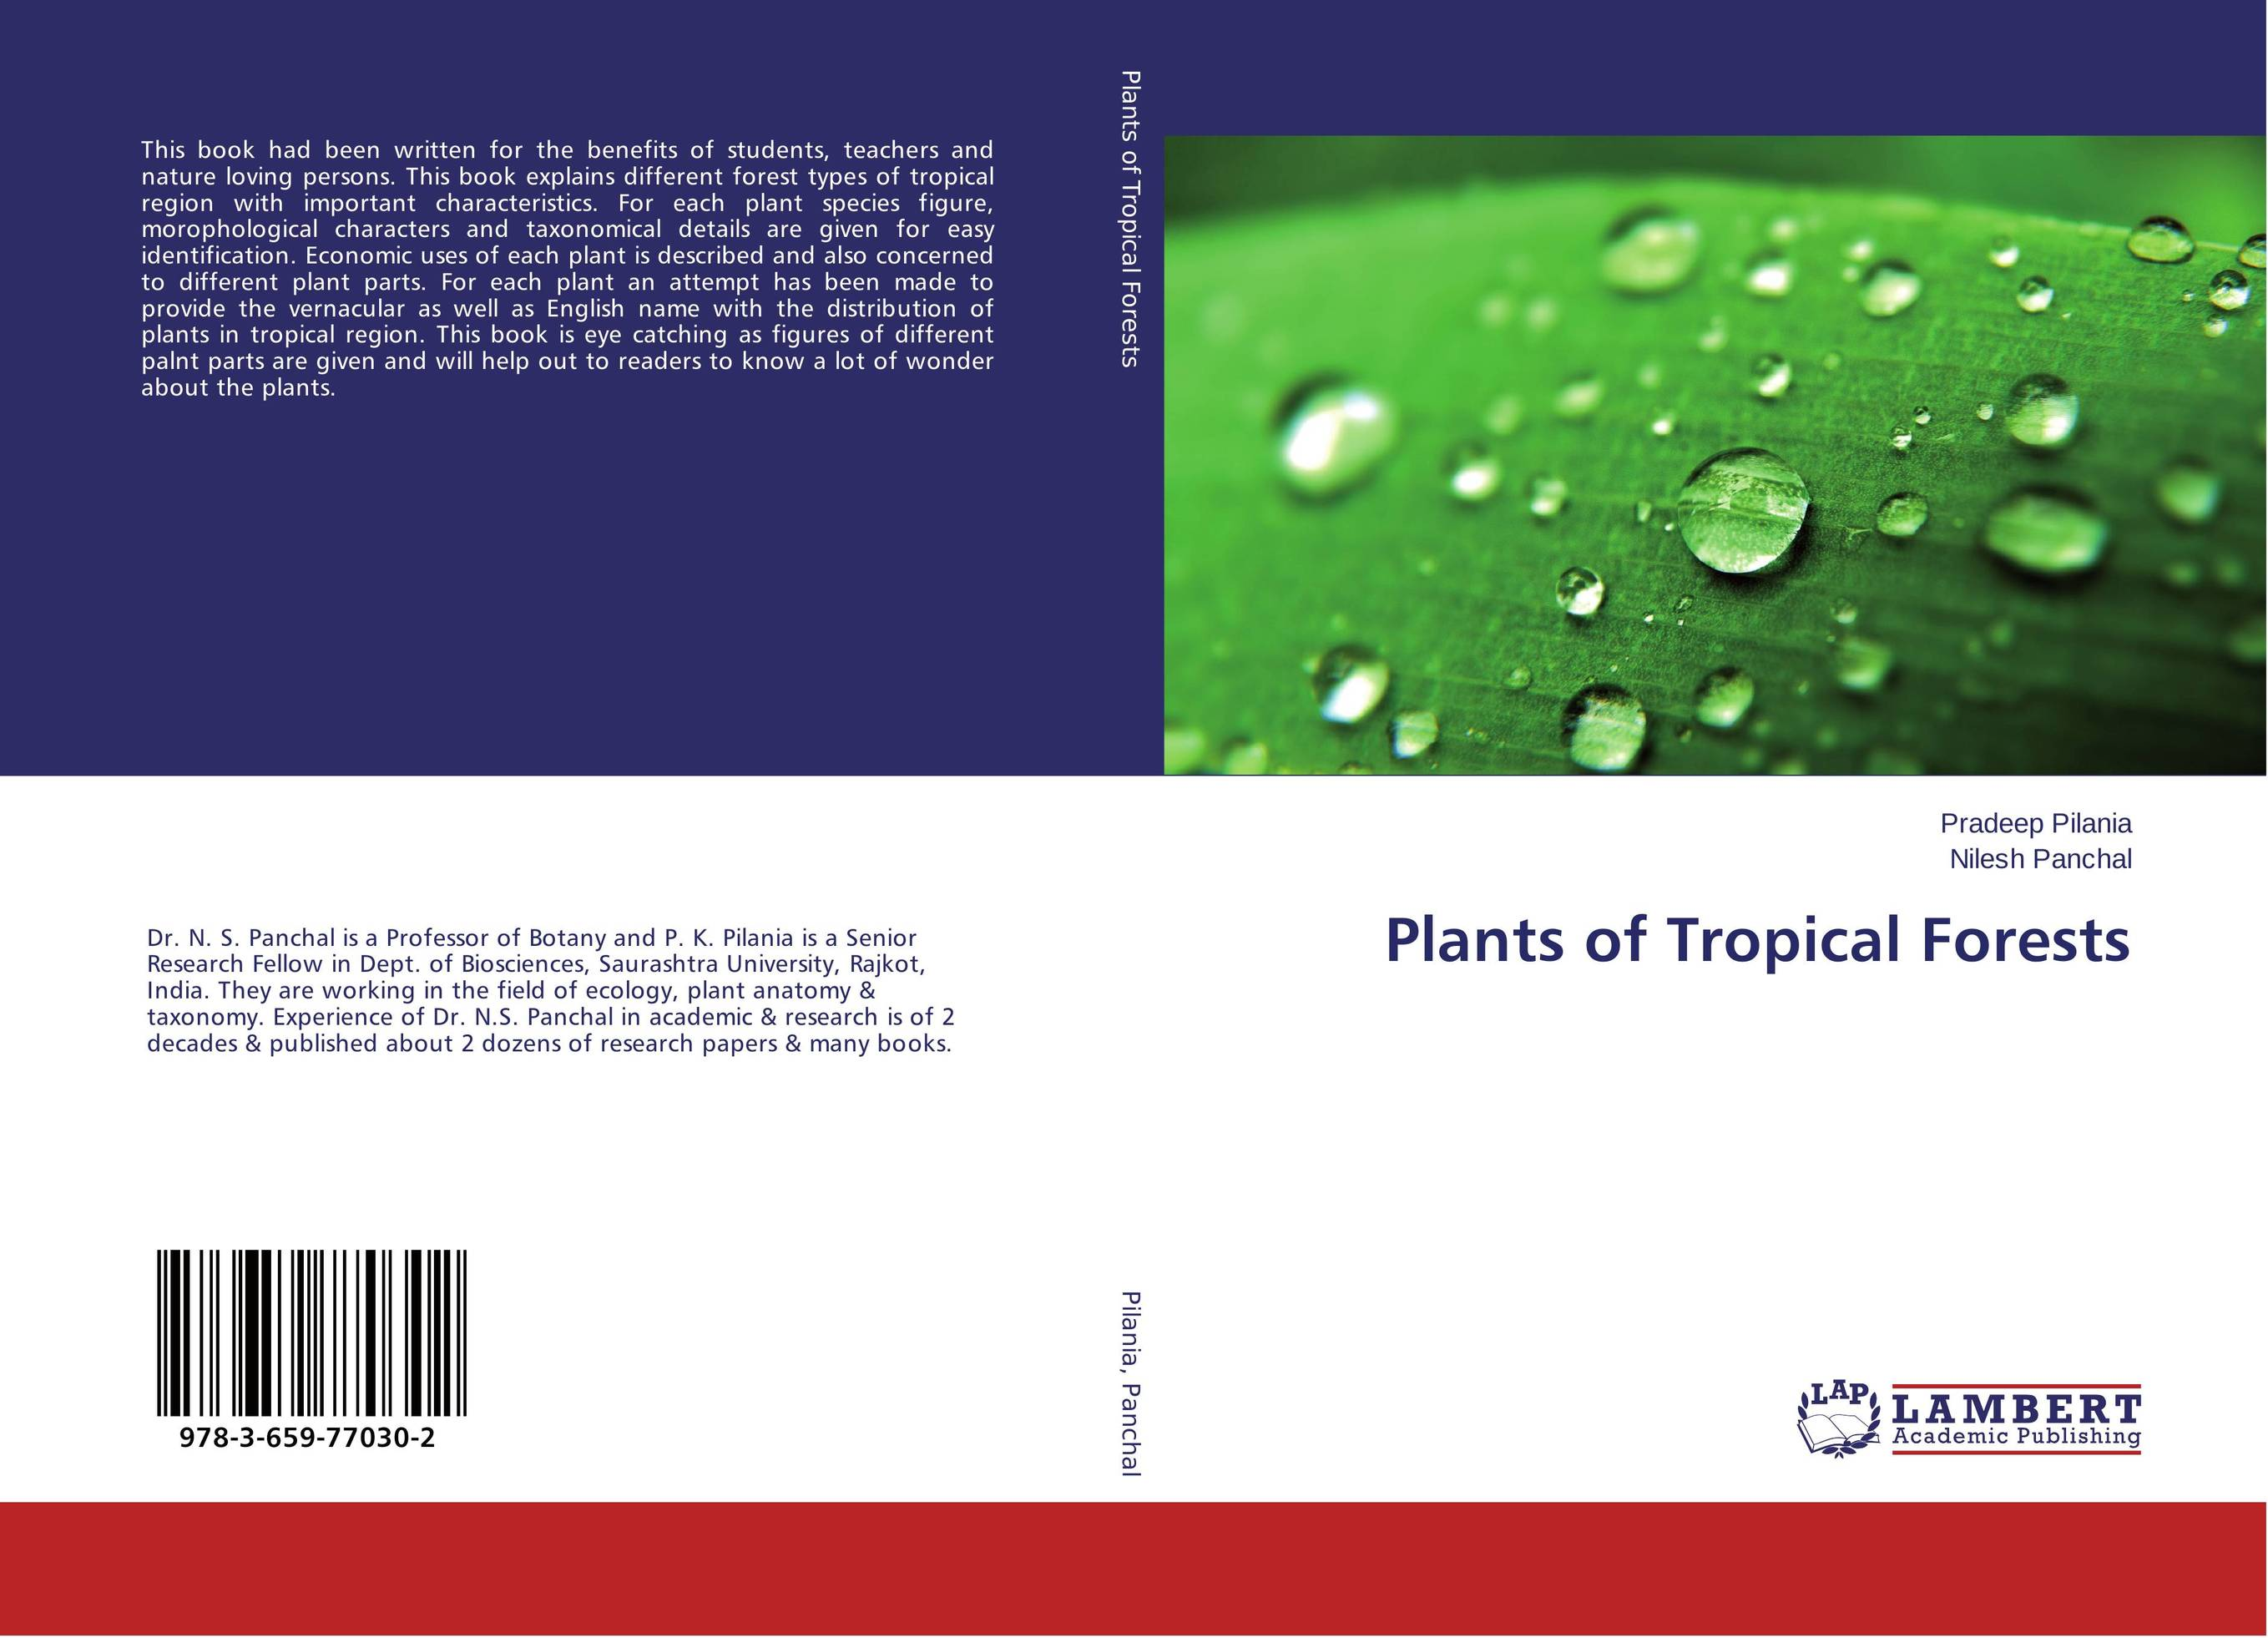 Plants of Tropical Forests